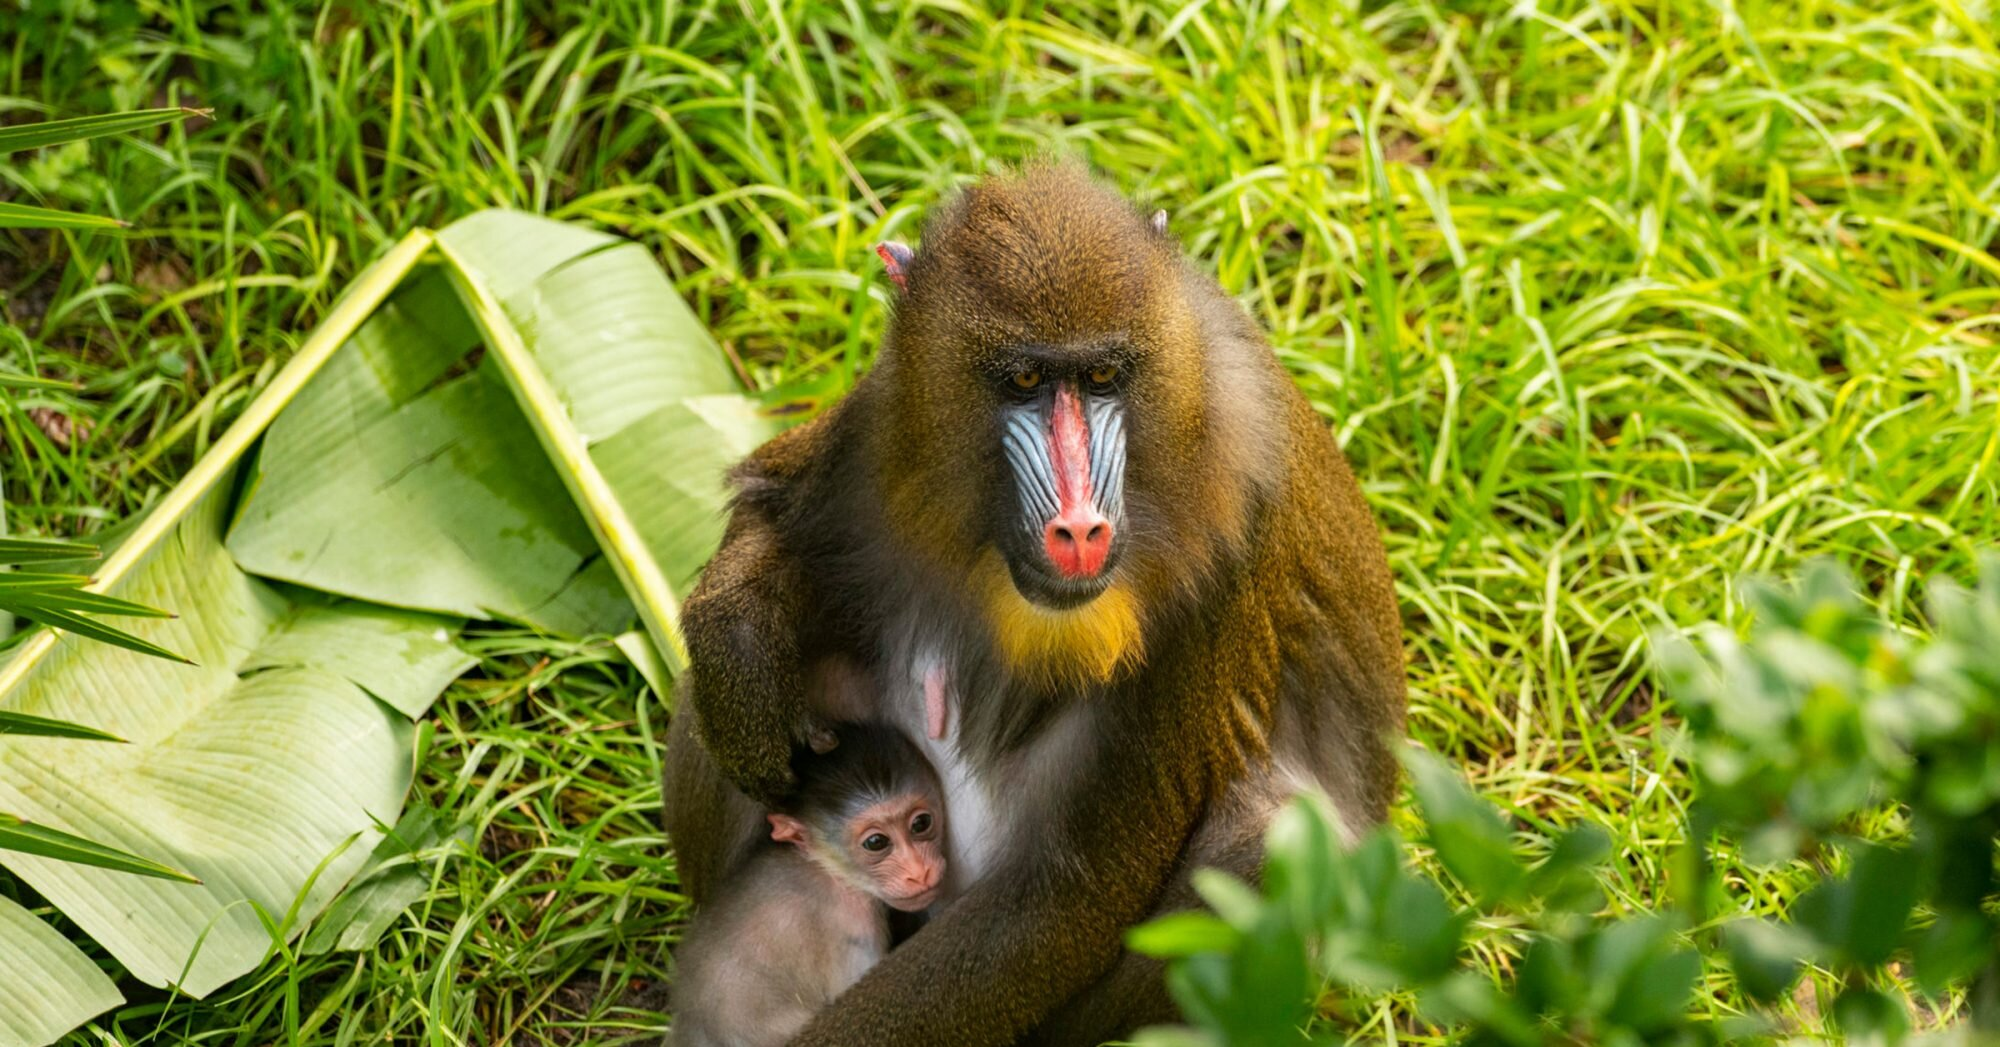 Adorable Baby Mandrill, the World's Most Colorful Monkey, Born at Disney's Animal Kingdom